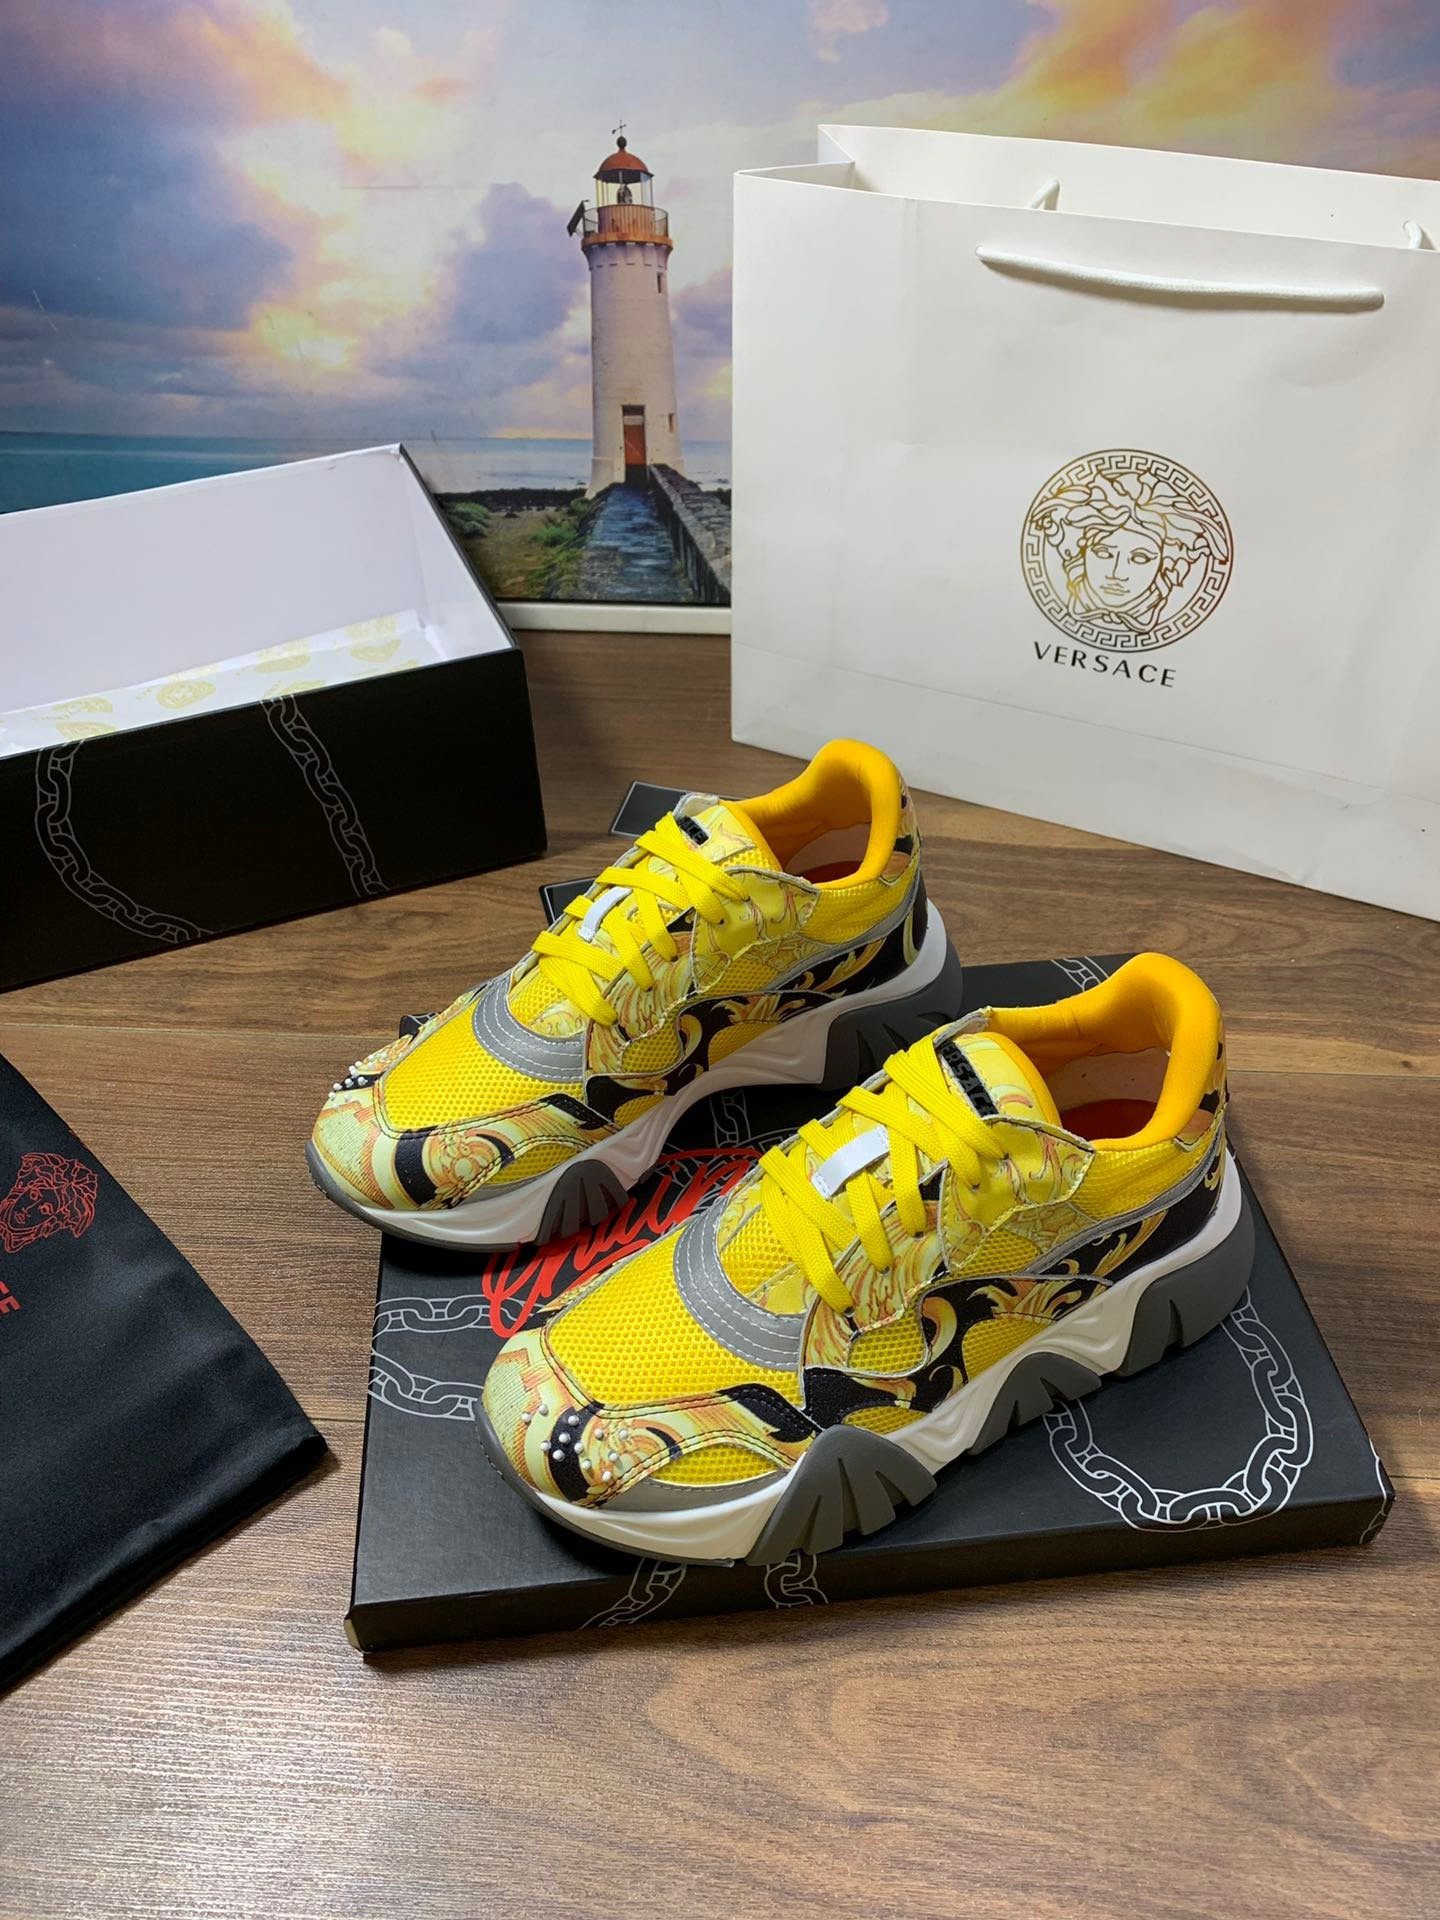 Image of Versace Women's Leather Fashion Low Top Sneakers Shoes